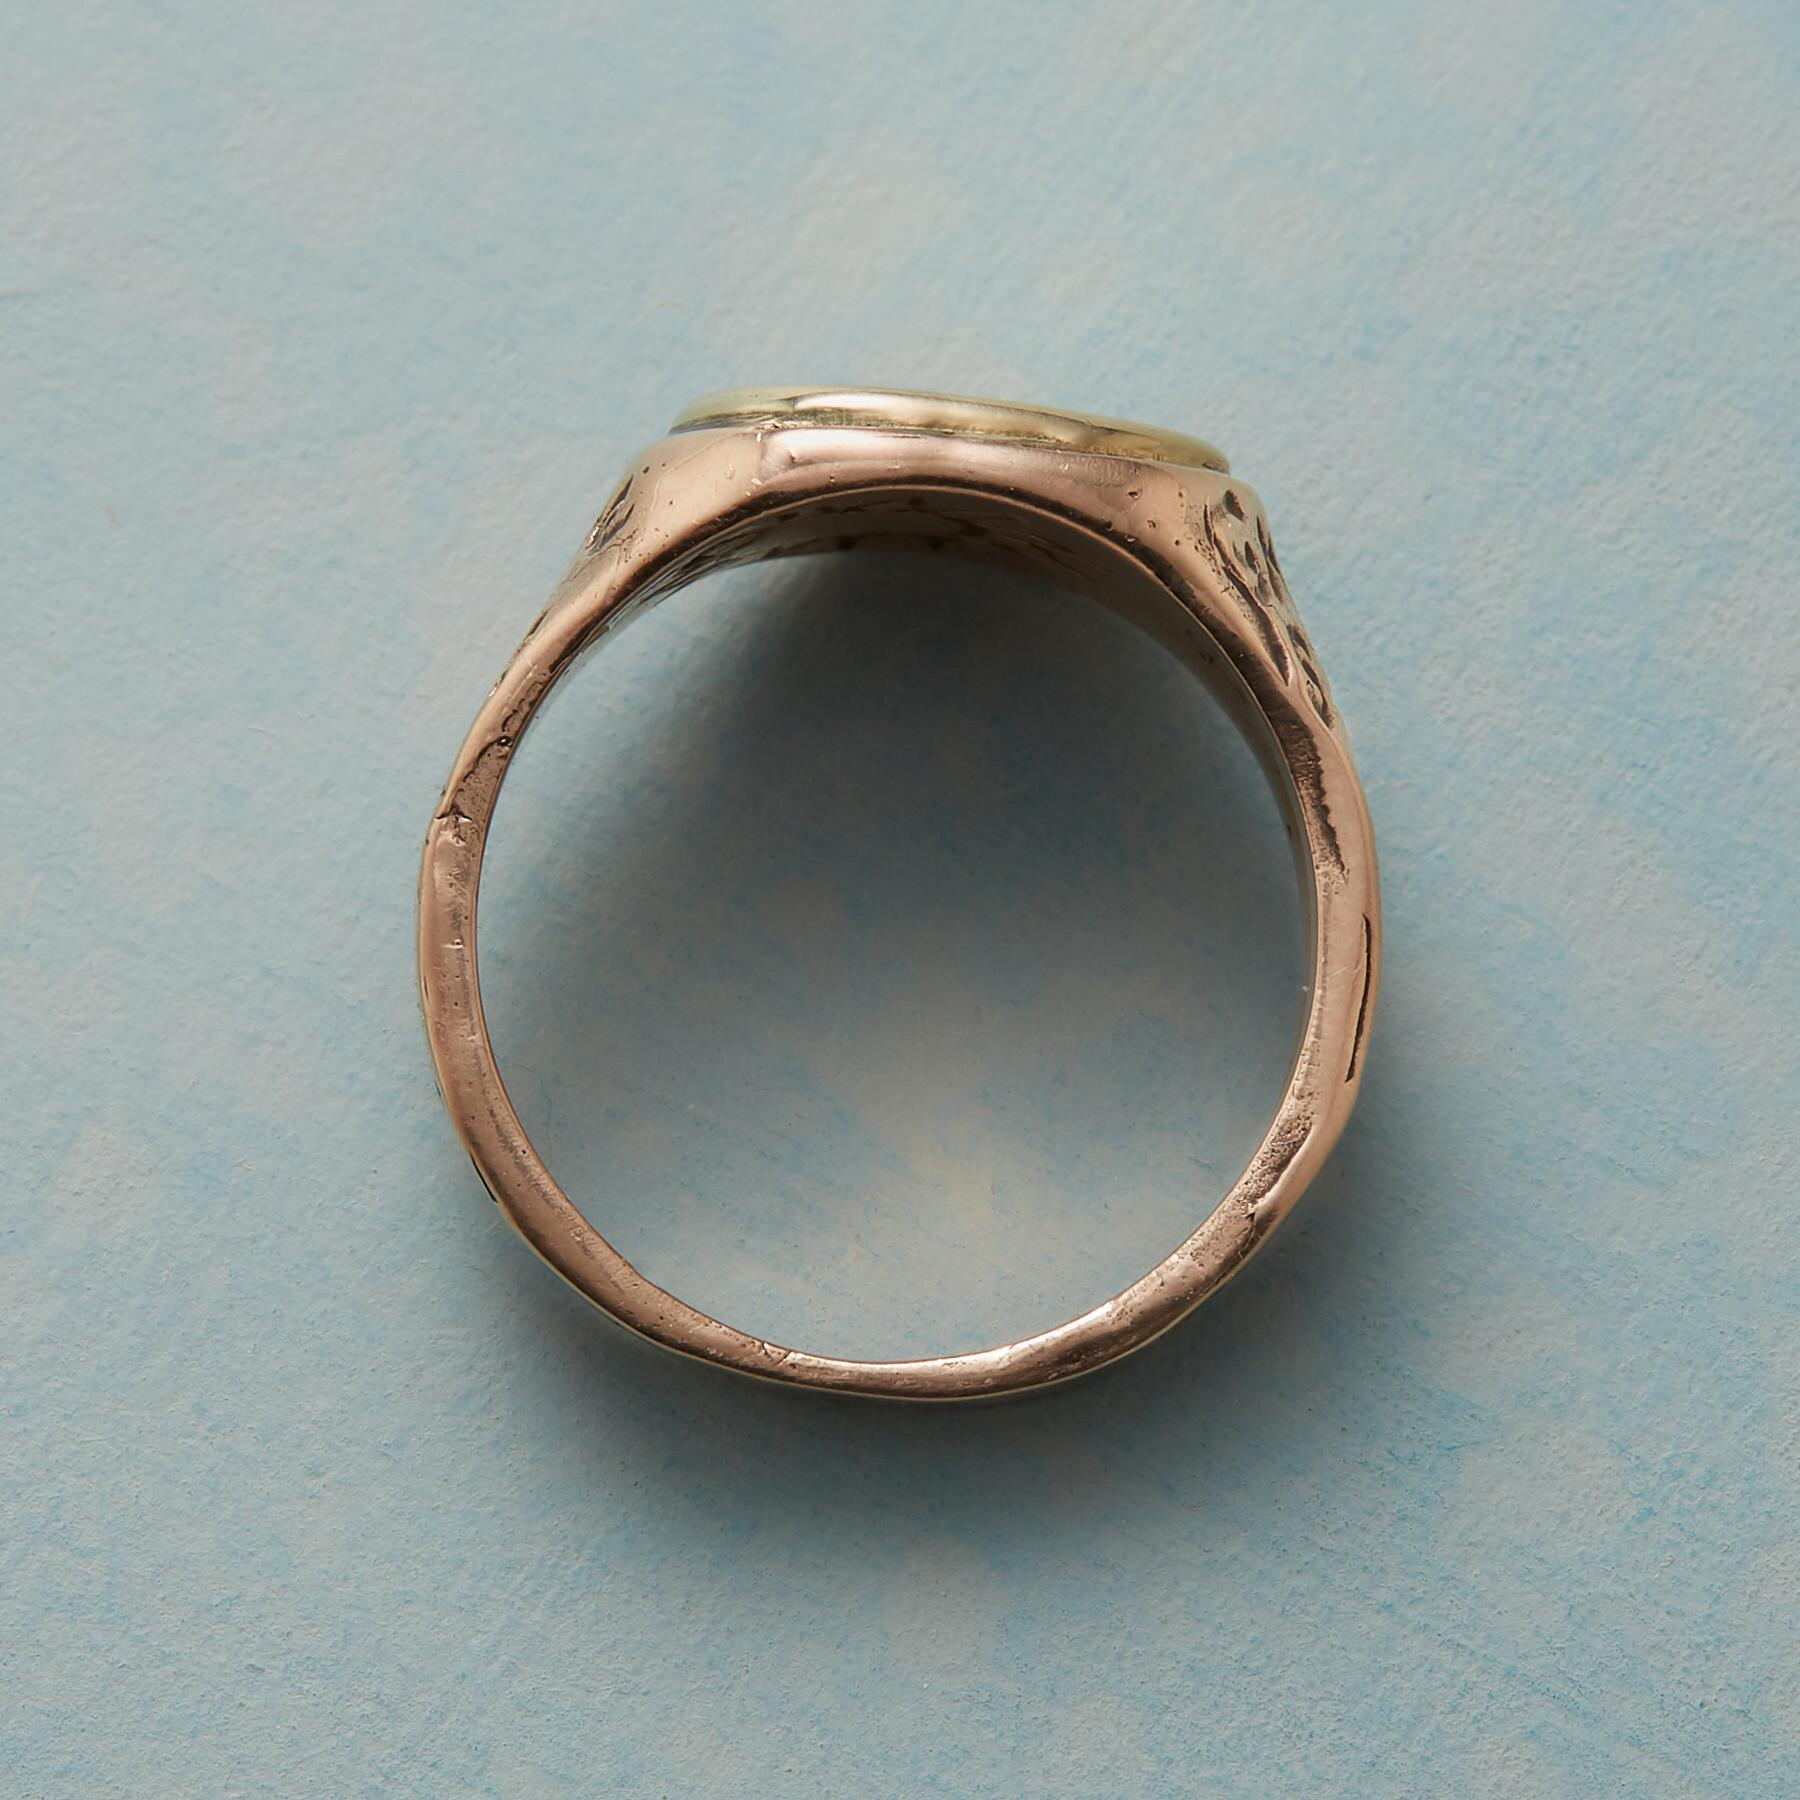 PERSONALIZED LIFE AFFIRMING RING: View 2